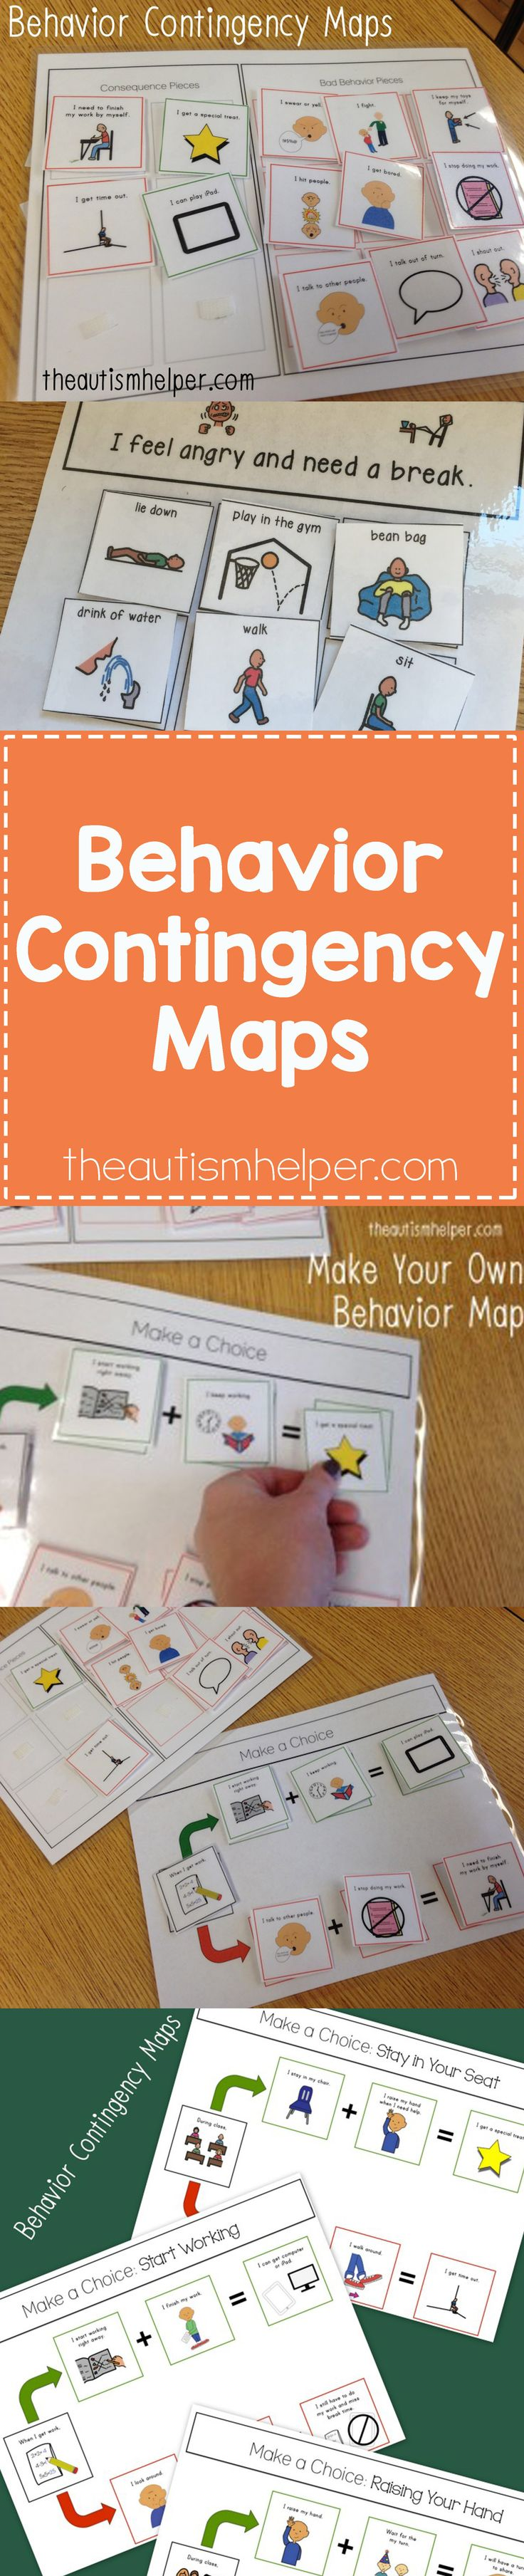 Behavioral Contingency Maps are a MUST-HAVE resource that will clearly & concretely explain any behavioral intervention to your kids! From theautismhelper.com #theautismhelper